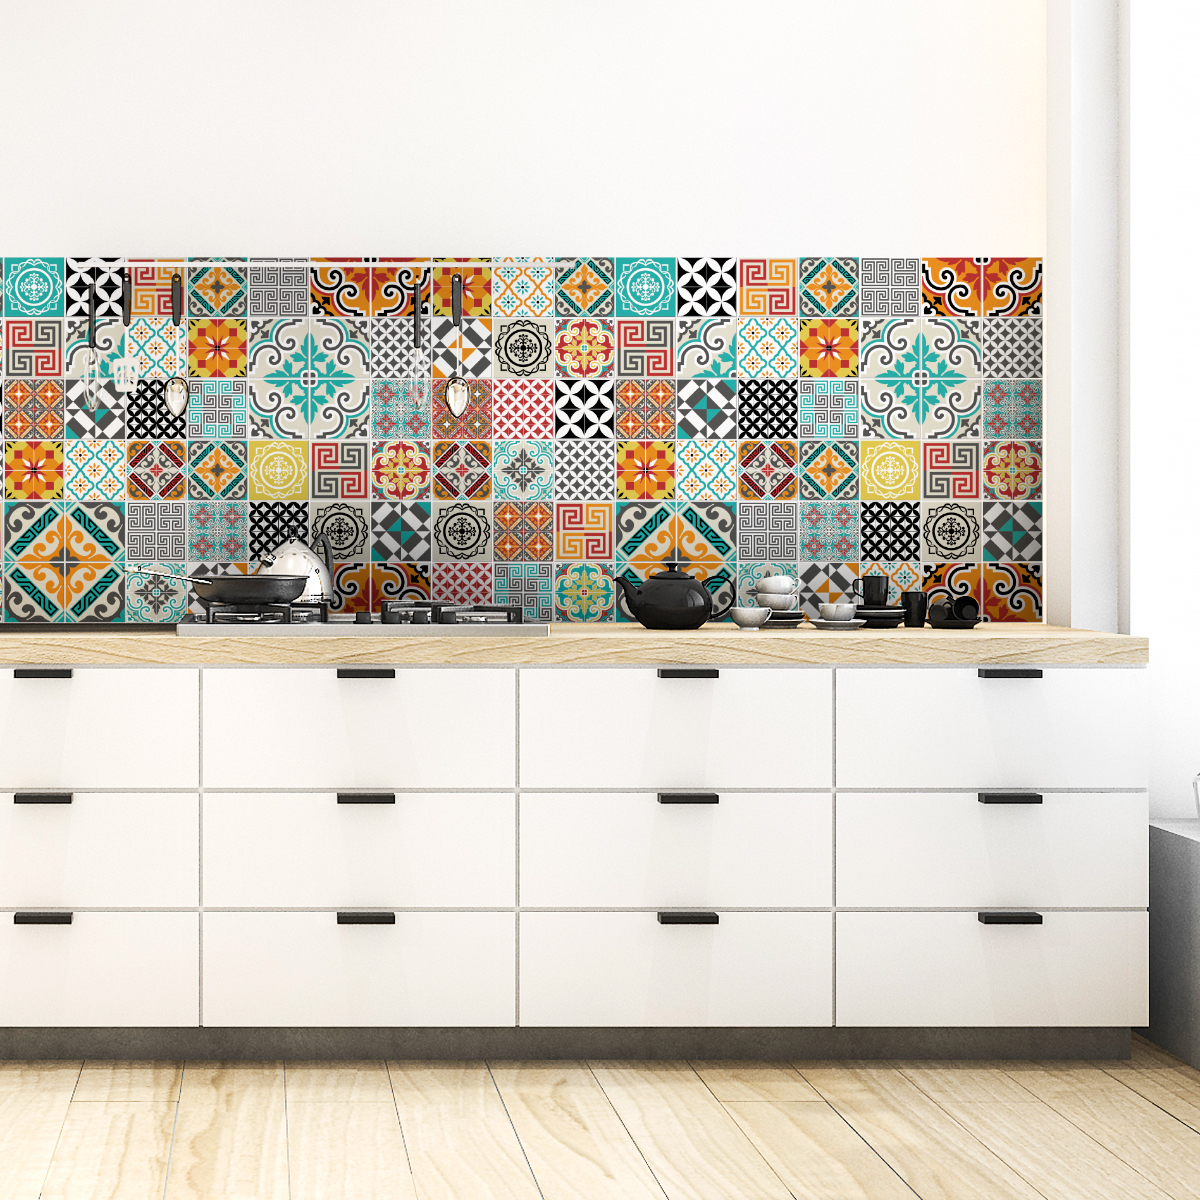 60 stickers carrelages azulejos batista cuisine carrelages ambiance sticker. Black Bedroom Furniture Sets. Home Design Ideas